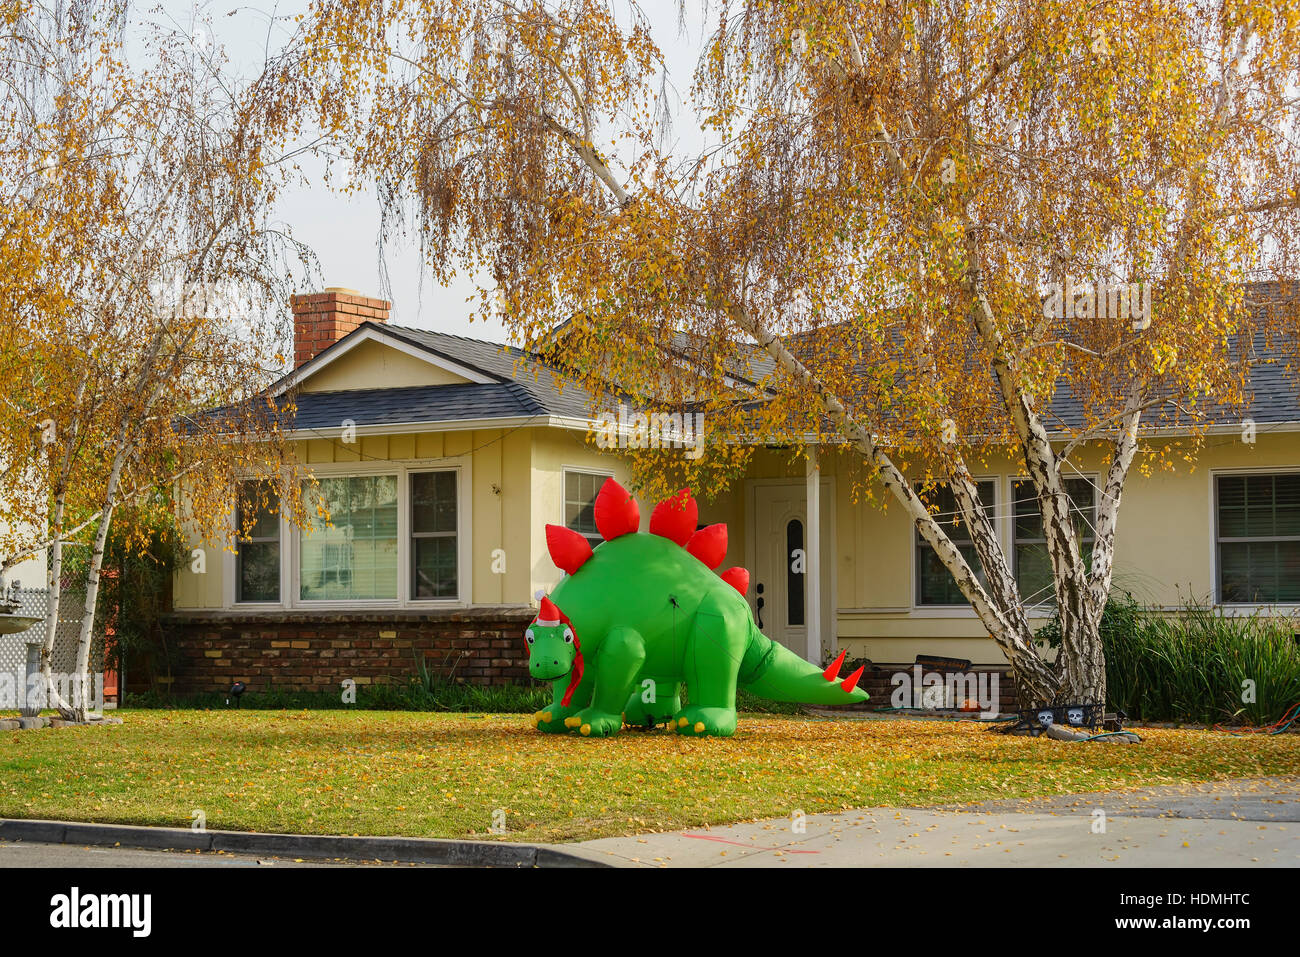 Temple City, DEC 12: Inflatable dinosaur christmas decoration and fall color in front of a house on DEC 12, 2016 - Stock Image